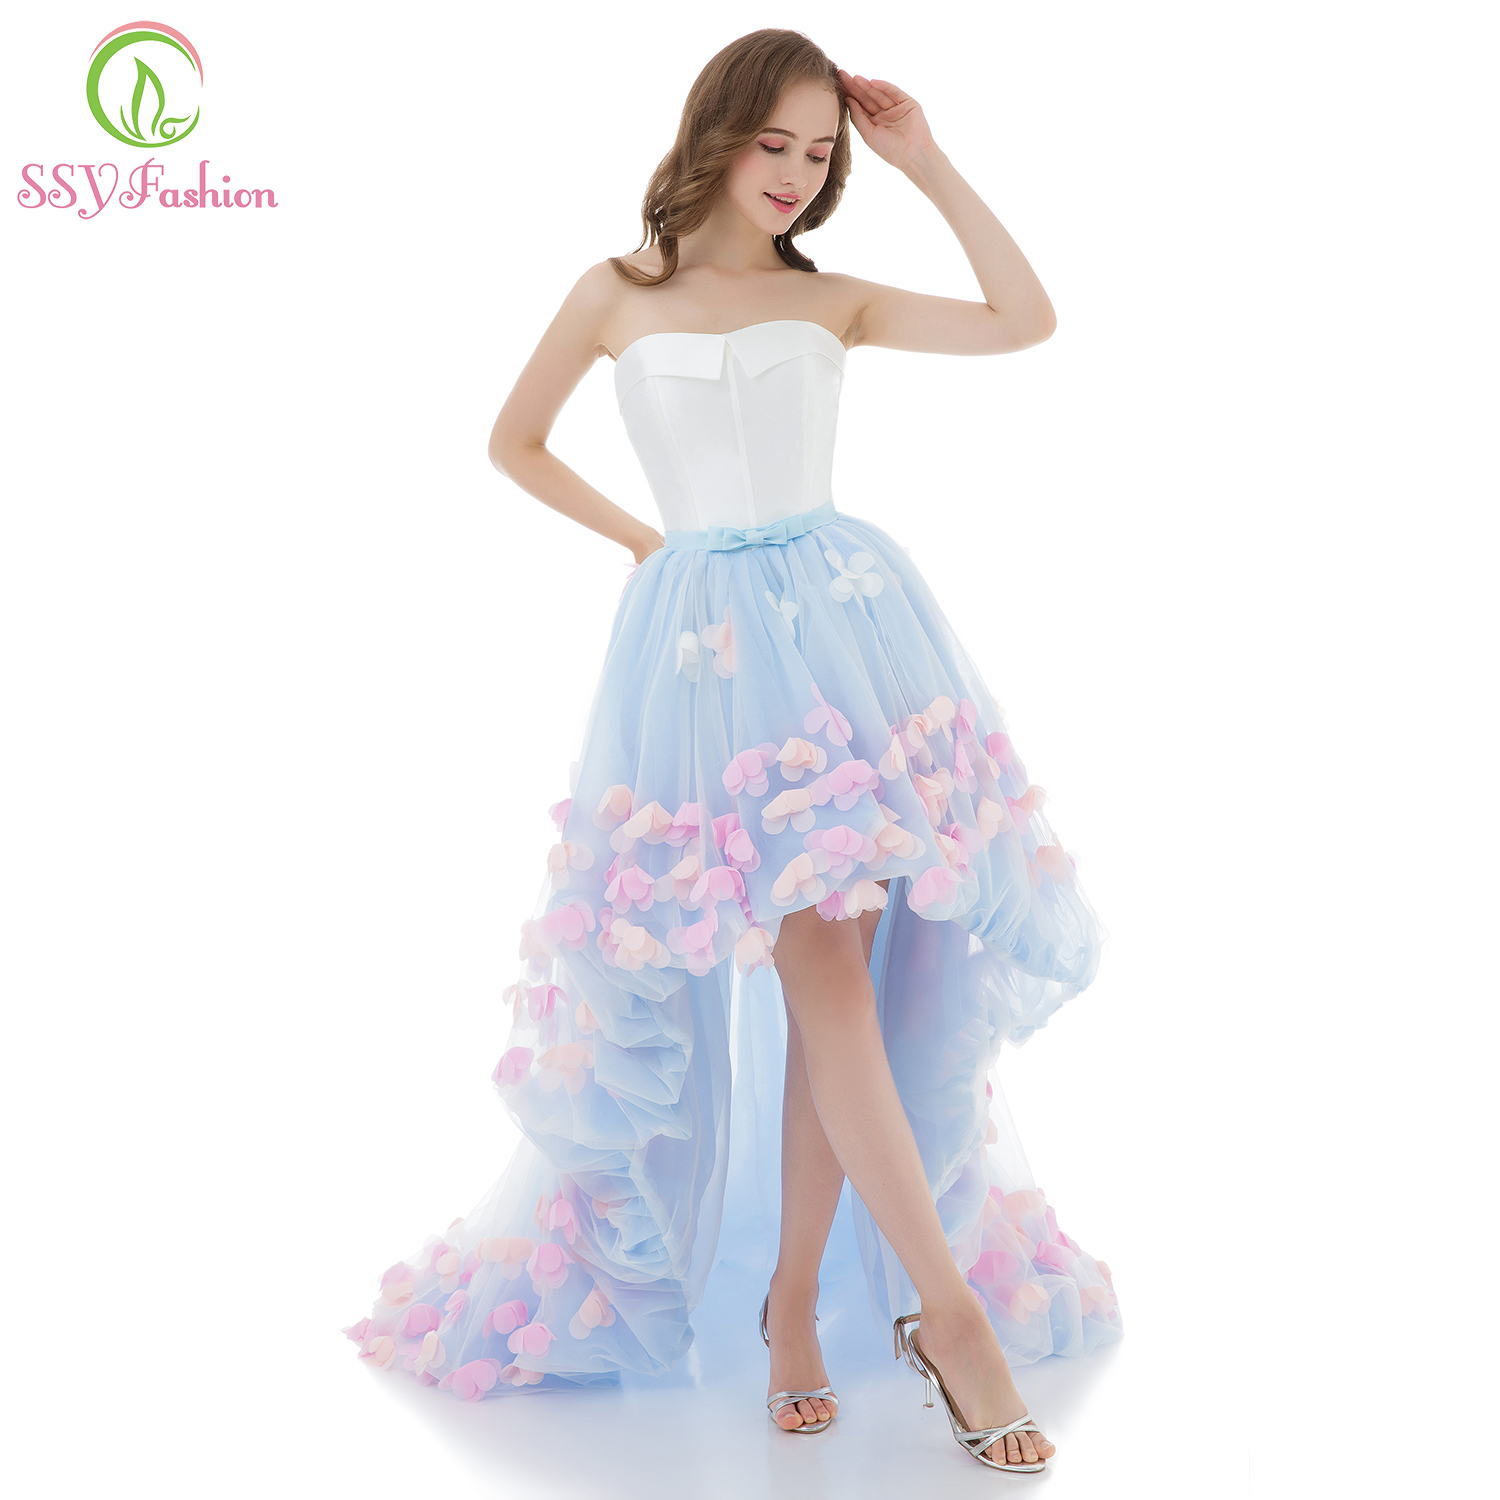 SSYFashion Sweet Light Blue Lace Flower Evening Dress Sexy Strapless Appliques Short Front Long Back Banquet